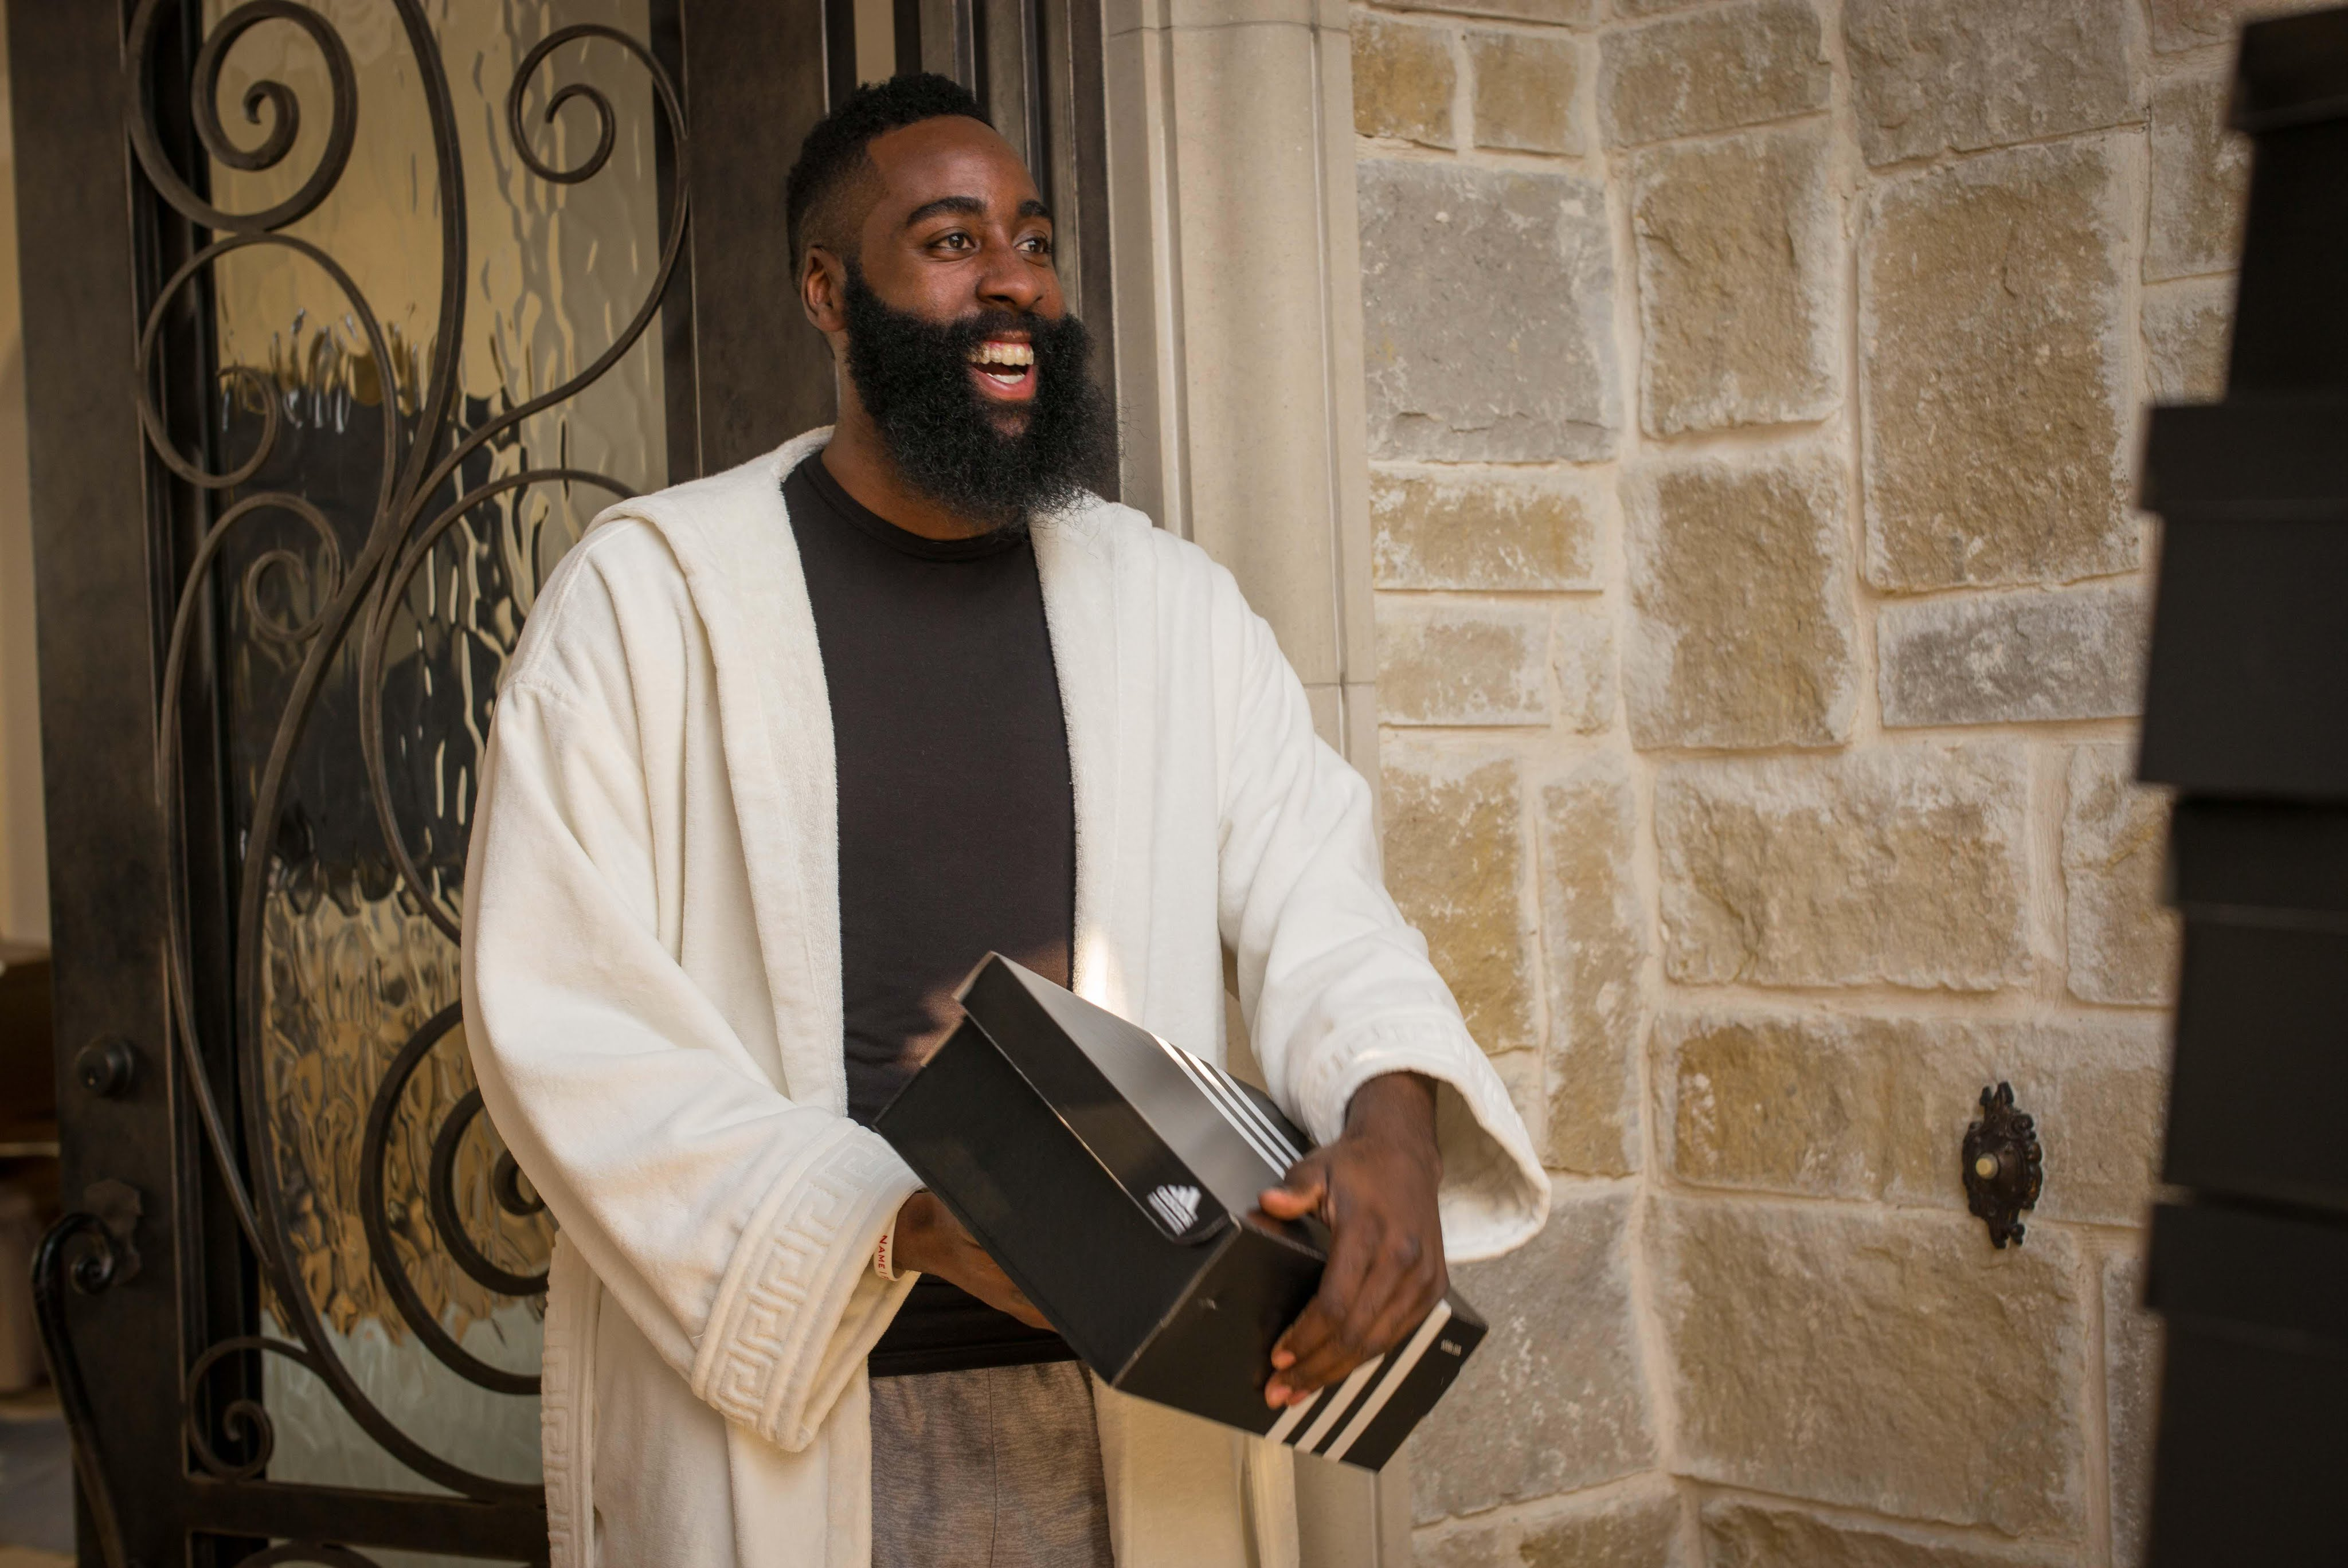 James Harden gets a truck full of Adidas shoes in new commercial